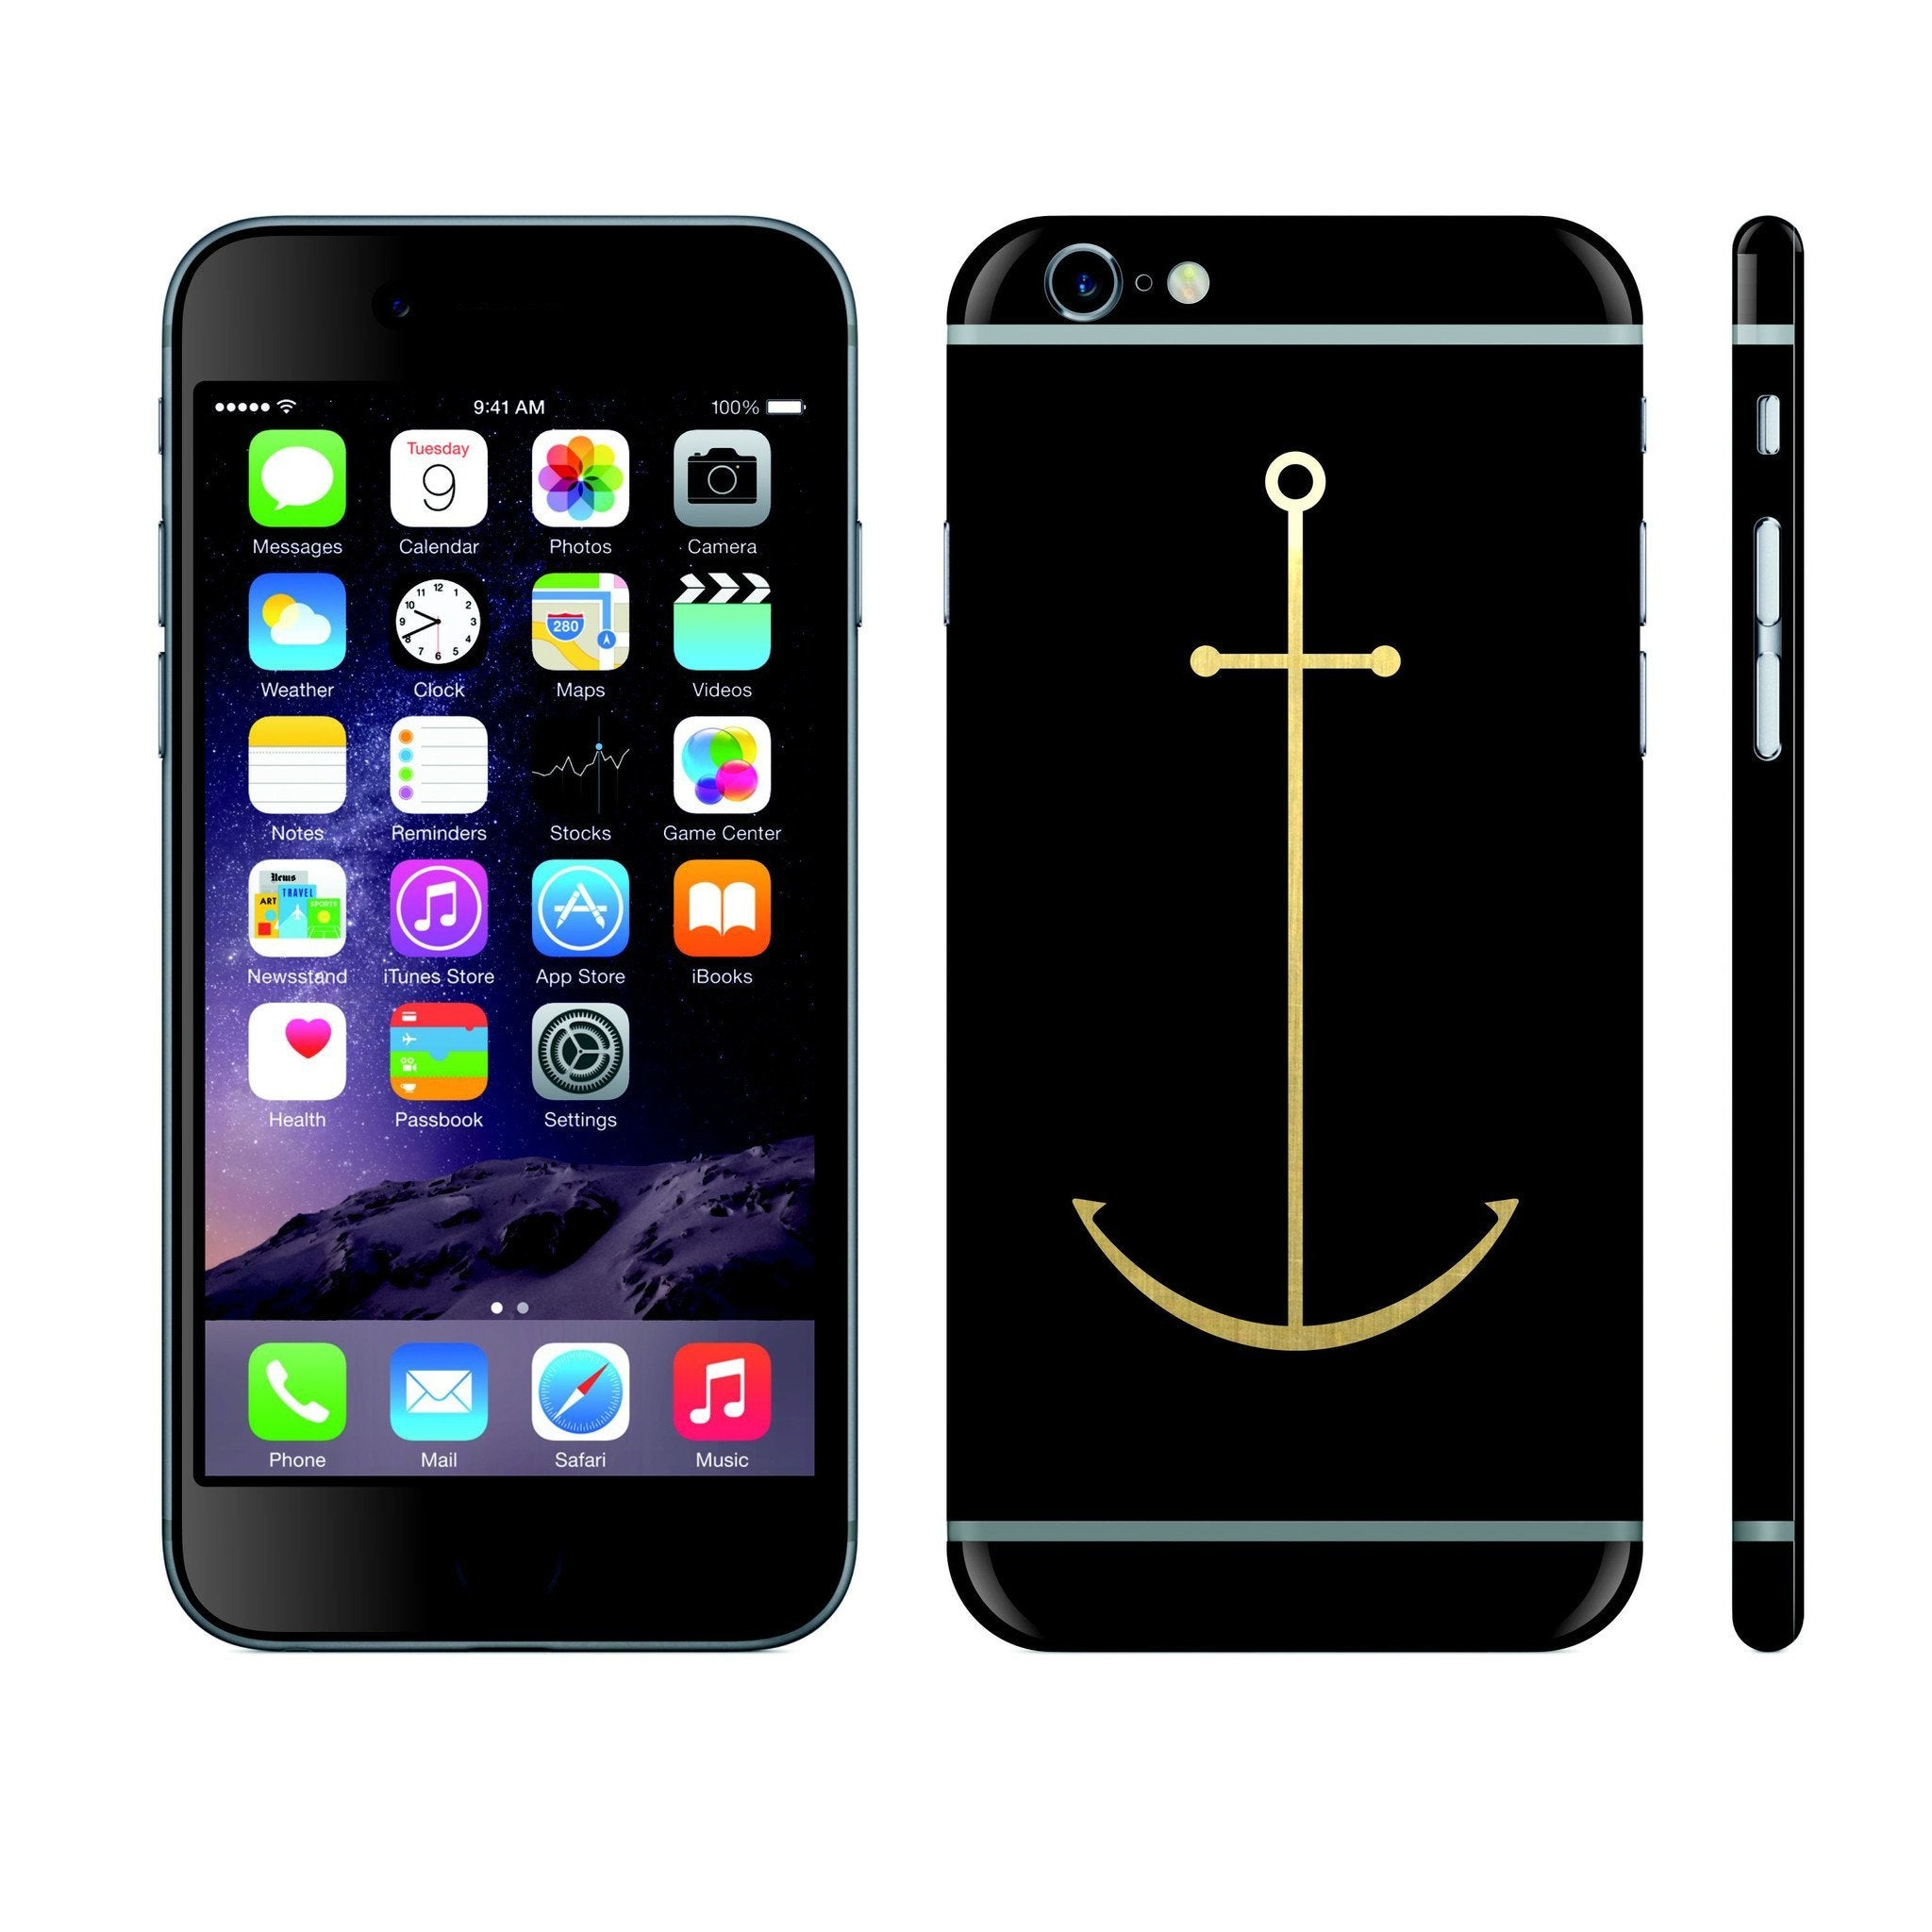 iPhone 6 PLUS Black Matt and Brushed Gold Anchor Custom Designs Skin Cover Decal Wrap Sticker Protector by EasySkinz